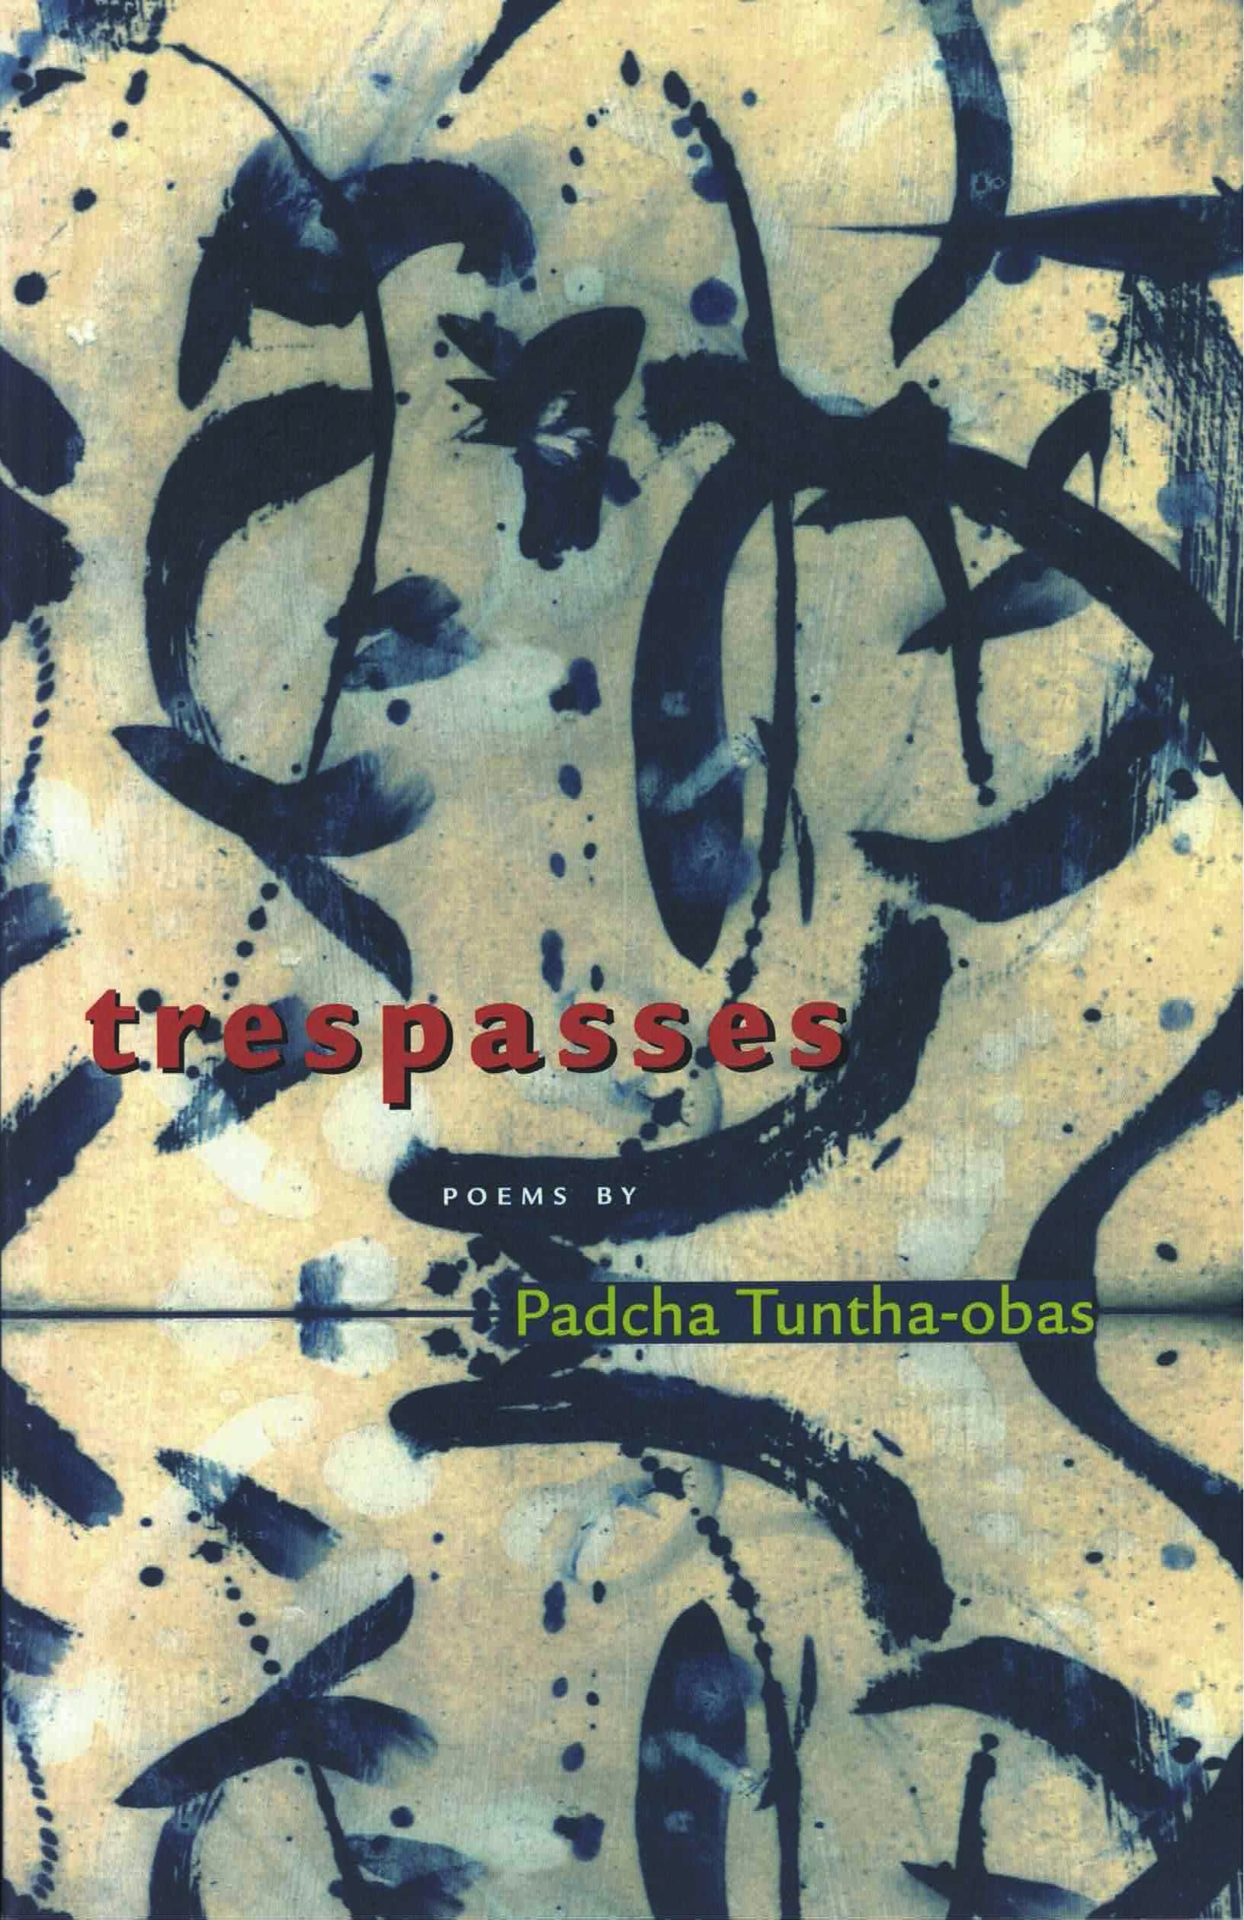 cover of trespasses by Padcha Tuntha-pbas, beige background with navy blue curved brushstrokes